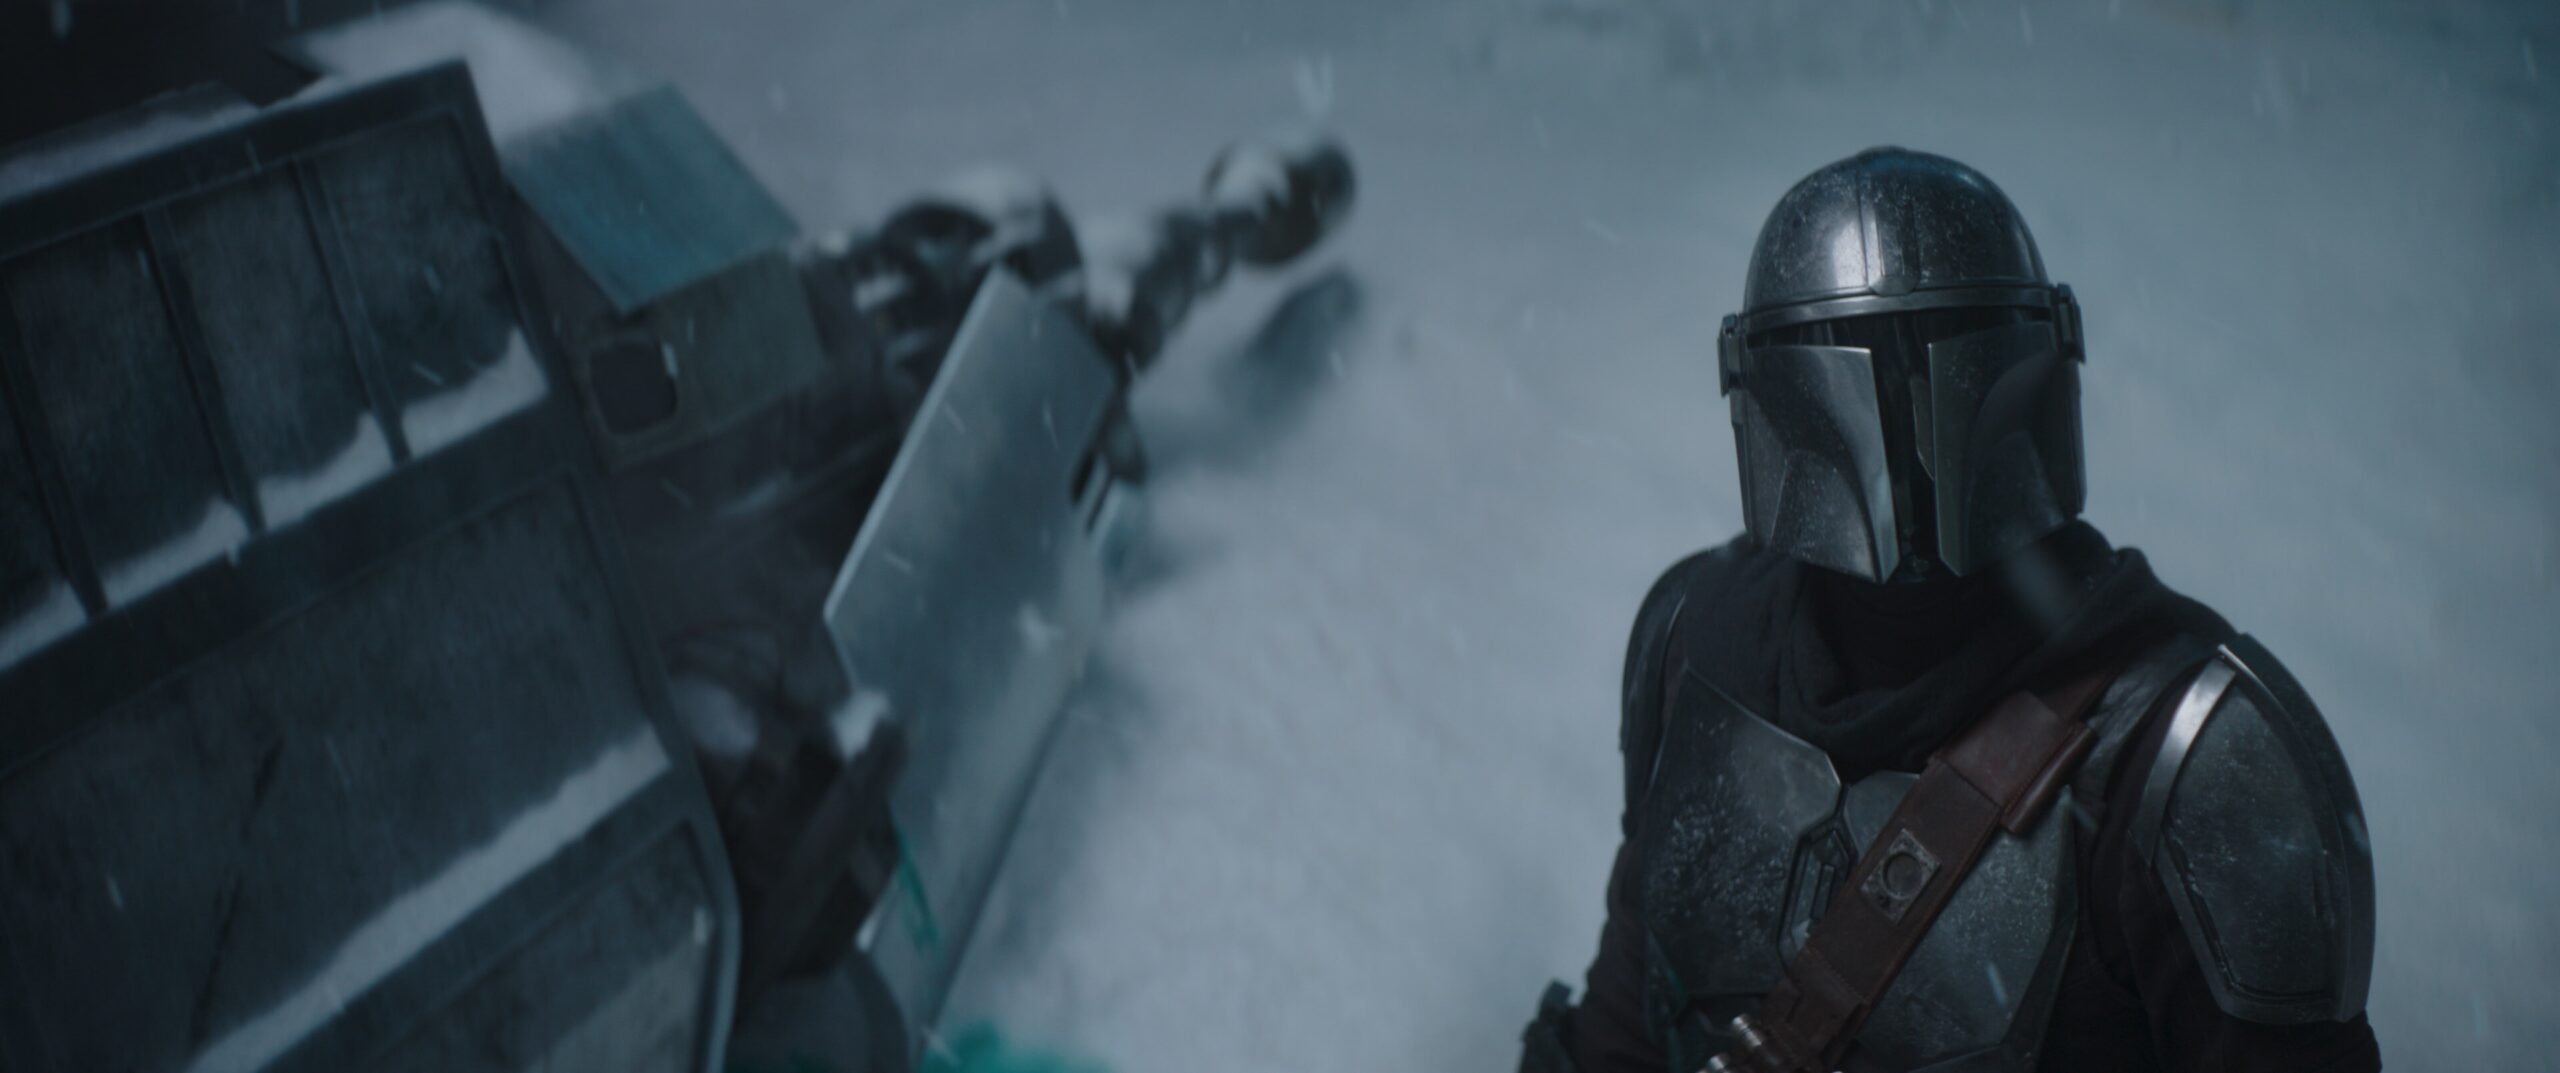 New Mandalorian Season 2 special look